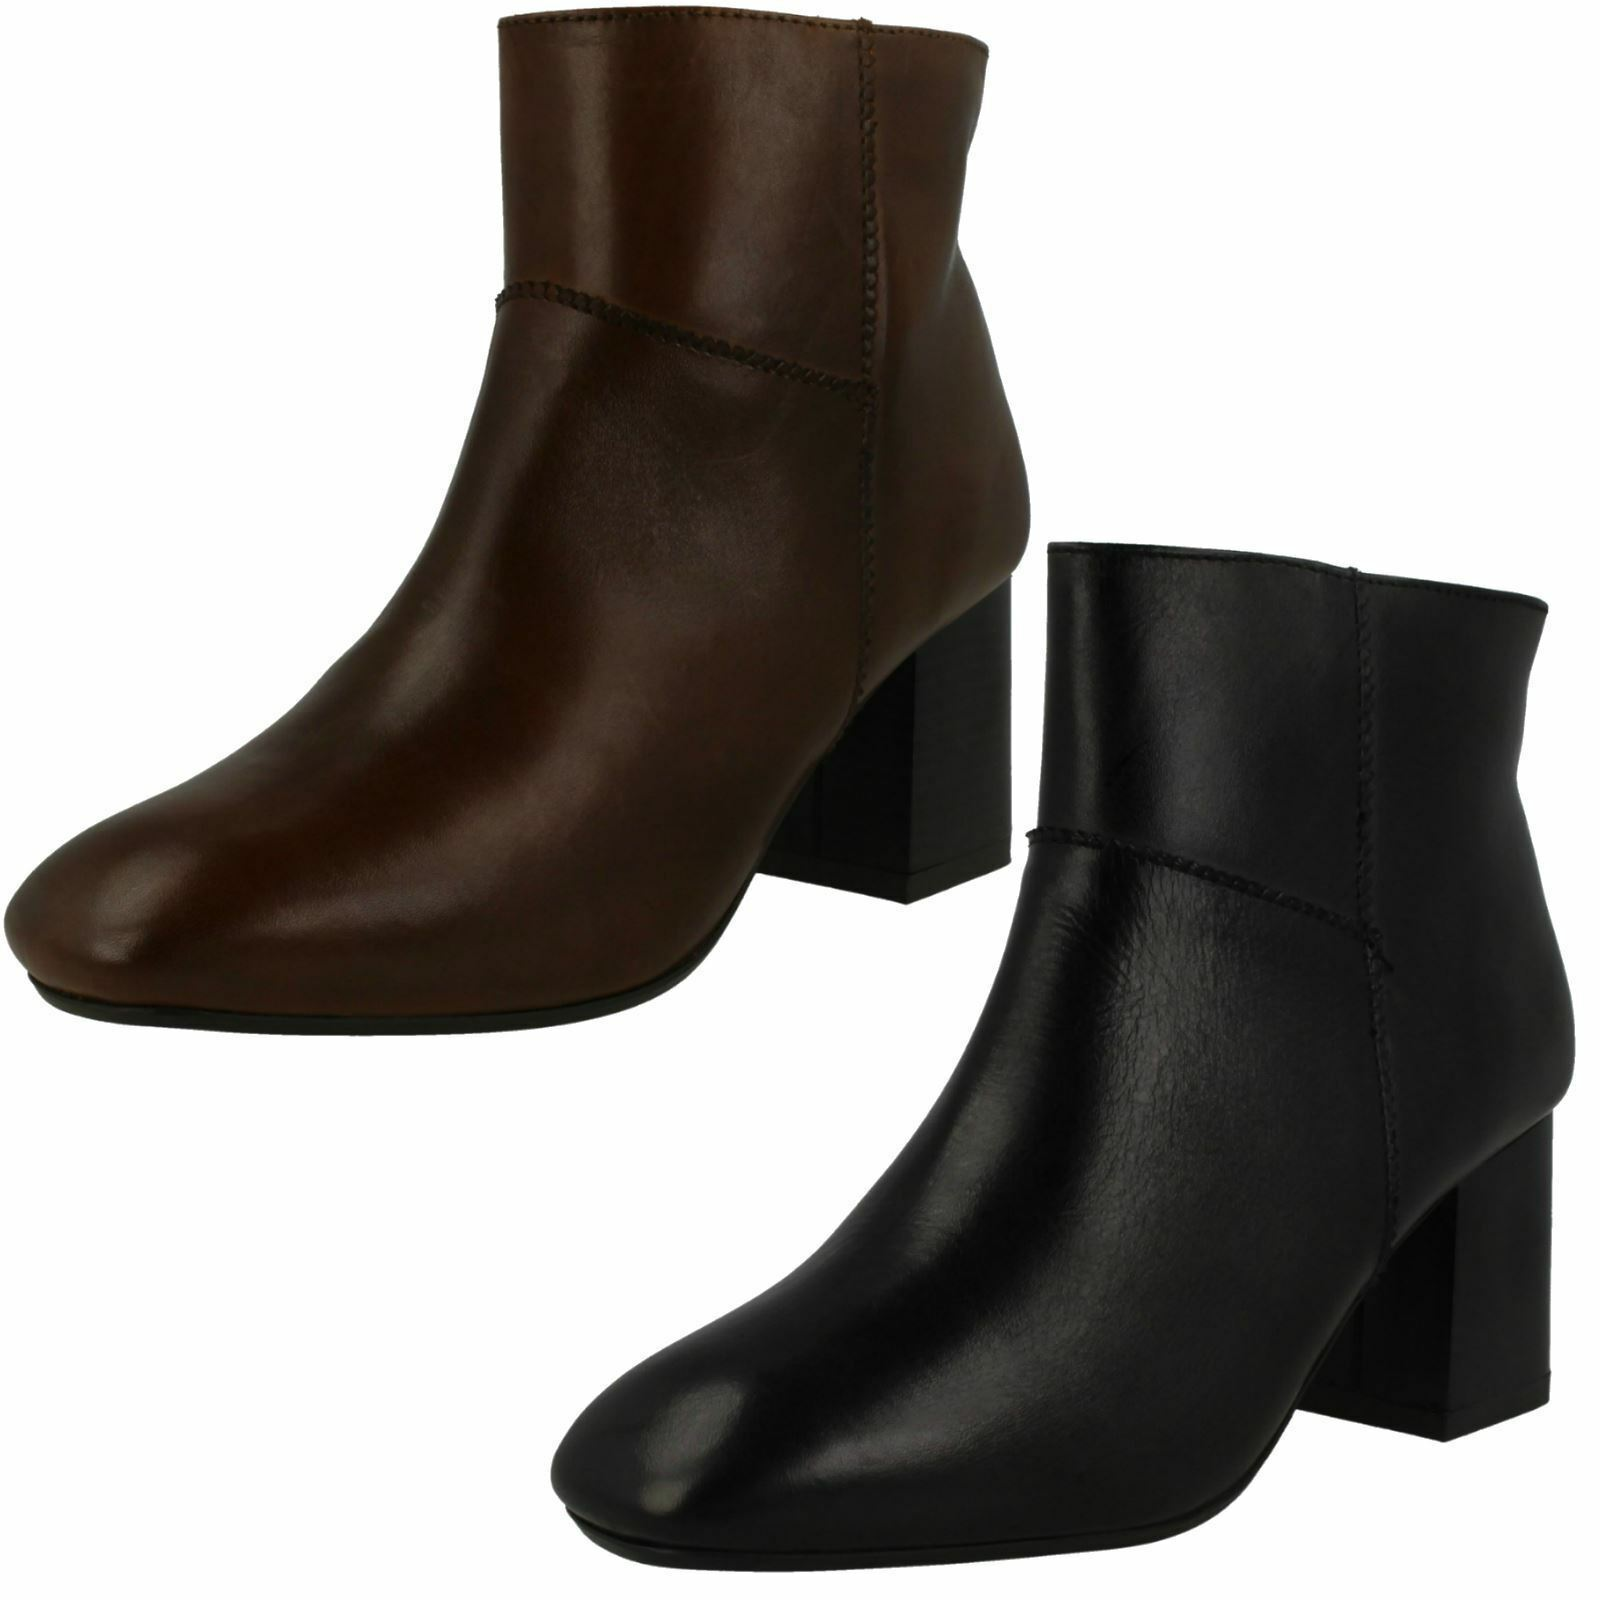 Ladies Black / Brown Leather Collection Ankle Boots F50656